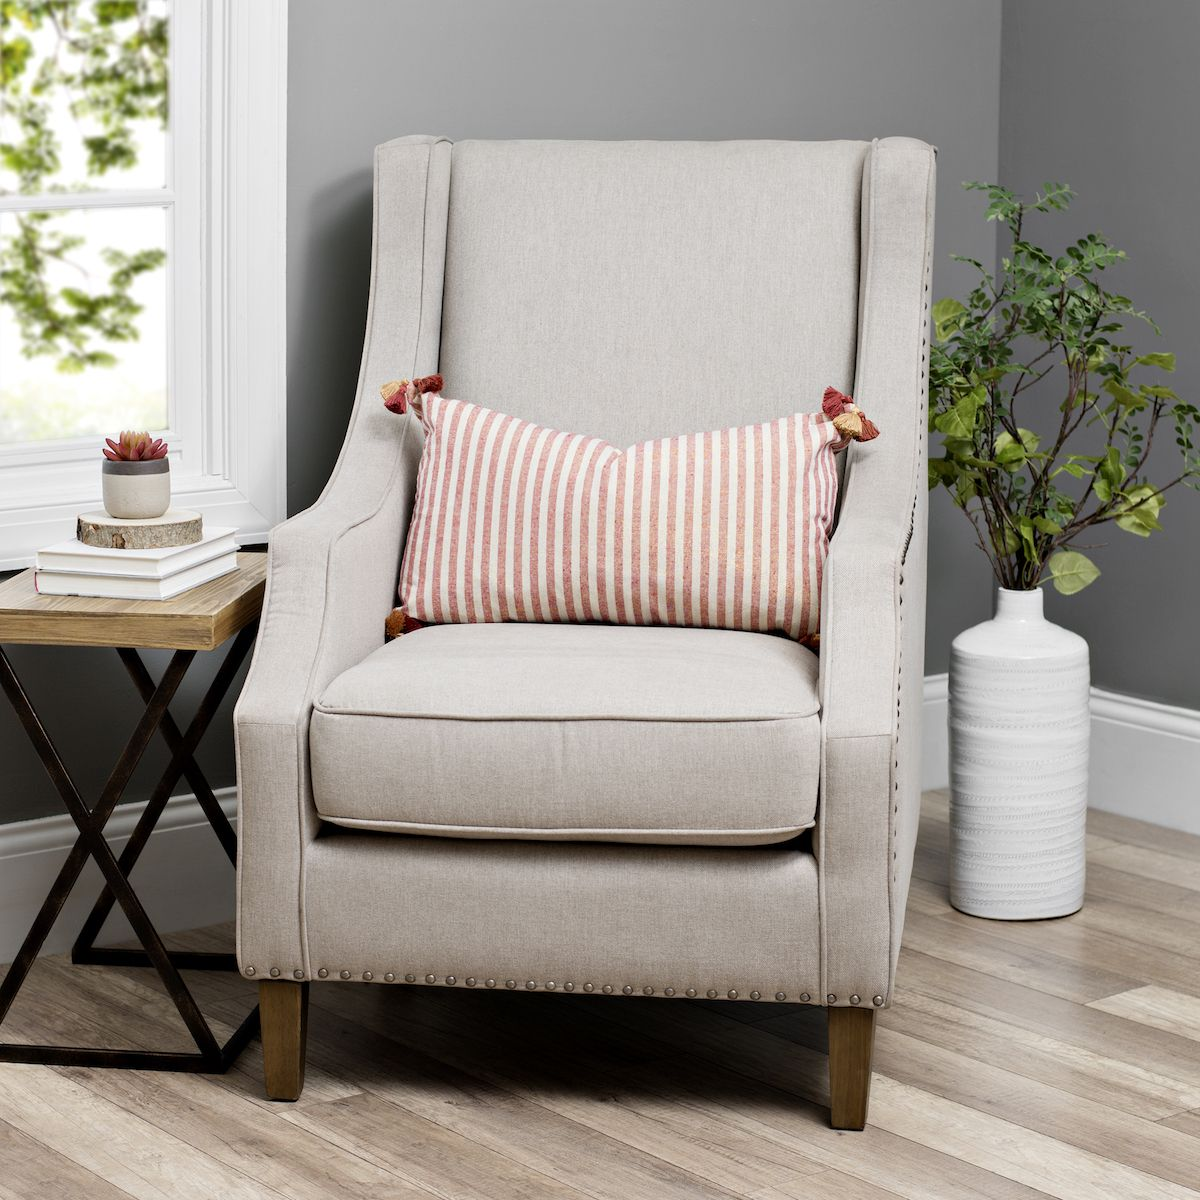 Accent Chair Pillow Side Table Cozy Corner Create This Setup In Your Bedroom For A Space To Relax And Get Away From I Accent Chairs Chair Guest Bedrooms